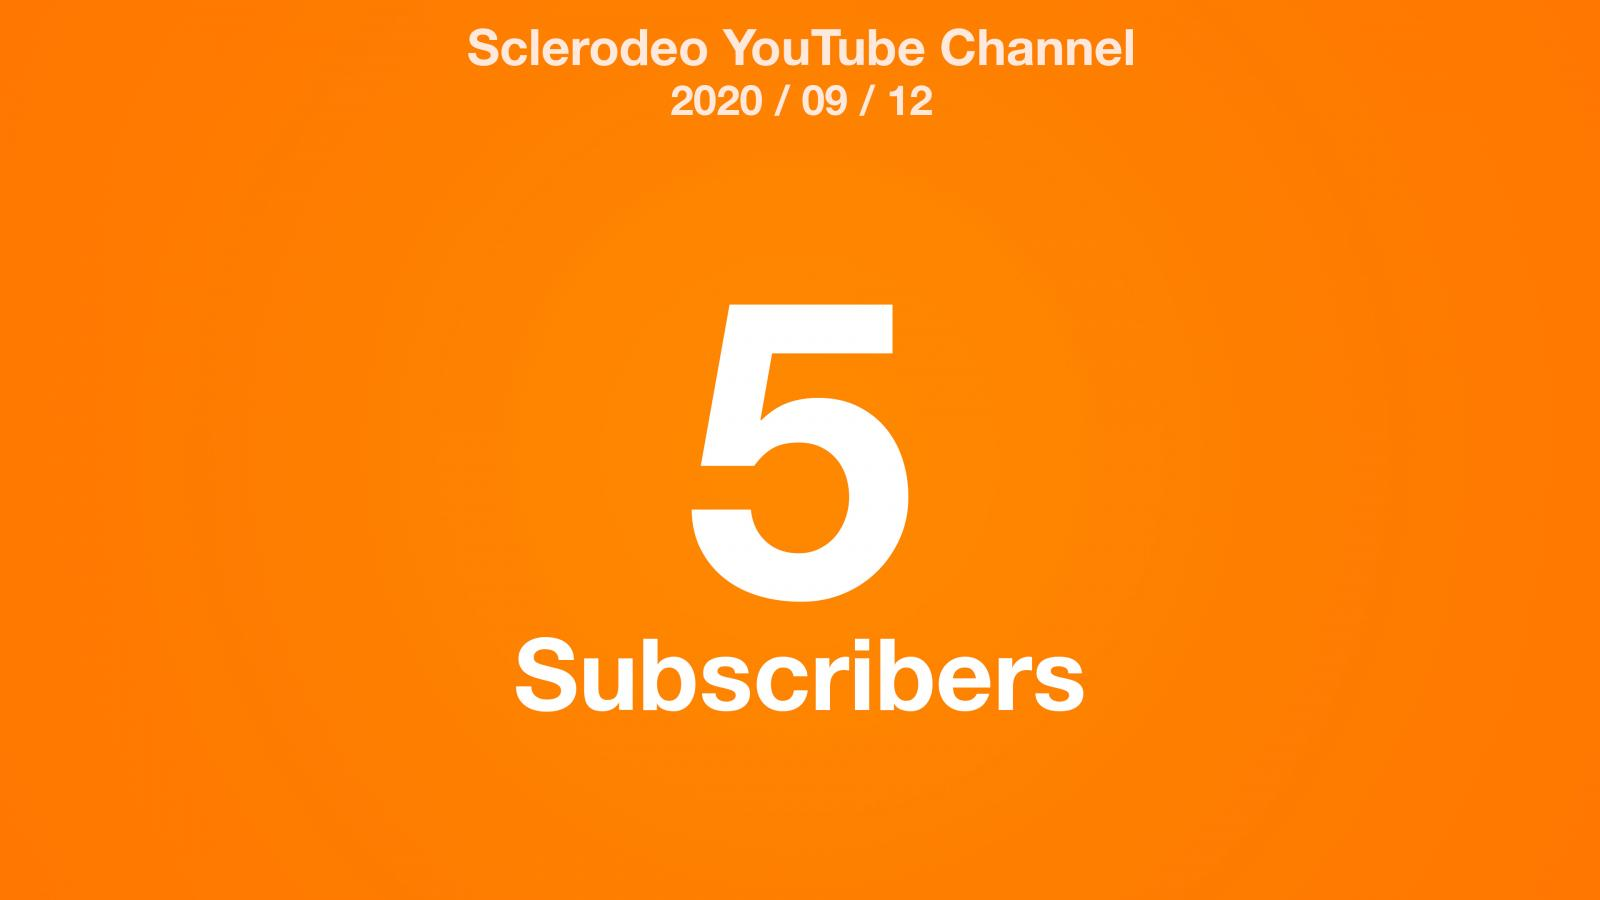 An orange radial gradient with the text: Sclerodeo YouTube Channel 2020/09/12 5 Subscribers